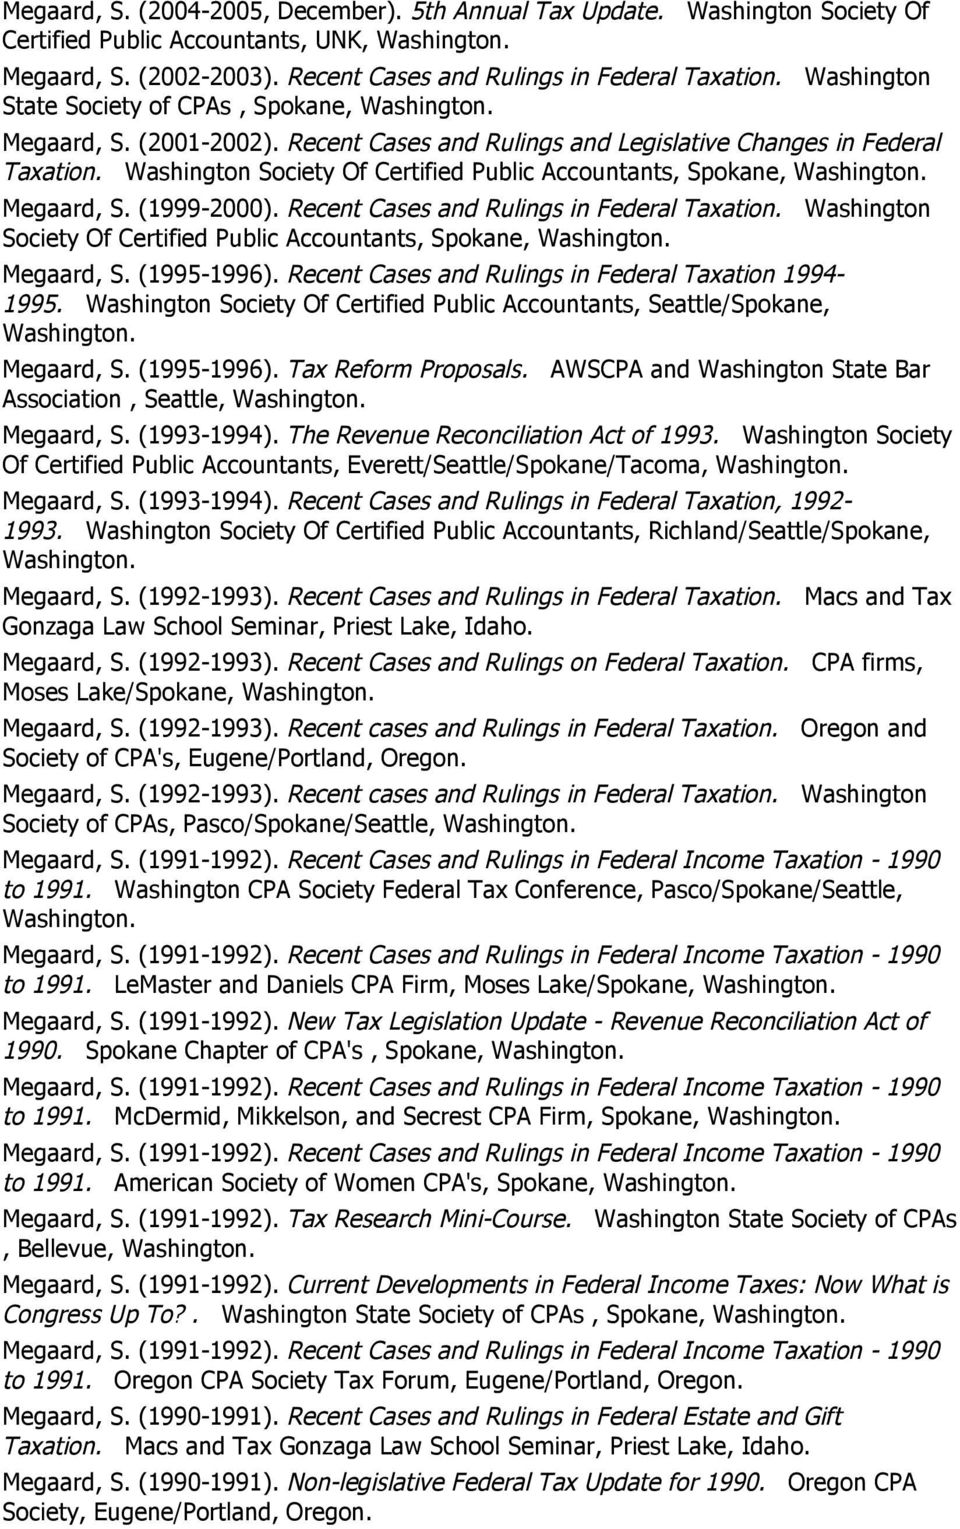 Washington Society Of Certified Public Accountants, Spokane, Megaard, S. (1999-2000). Recent Cases and Rulings in Federal Taxation.